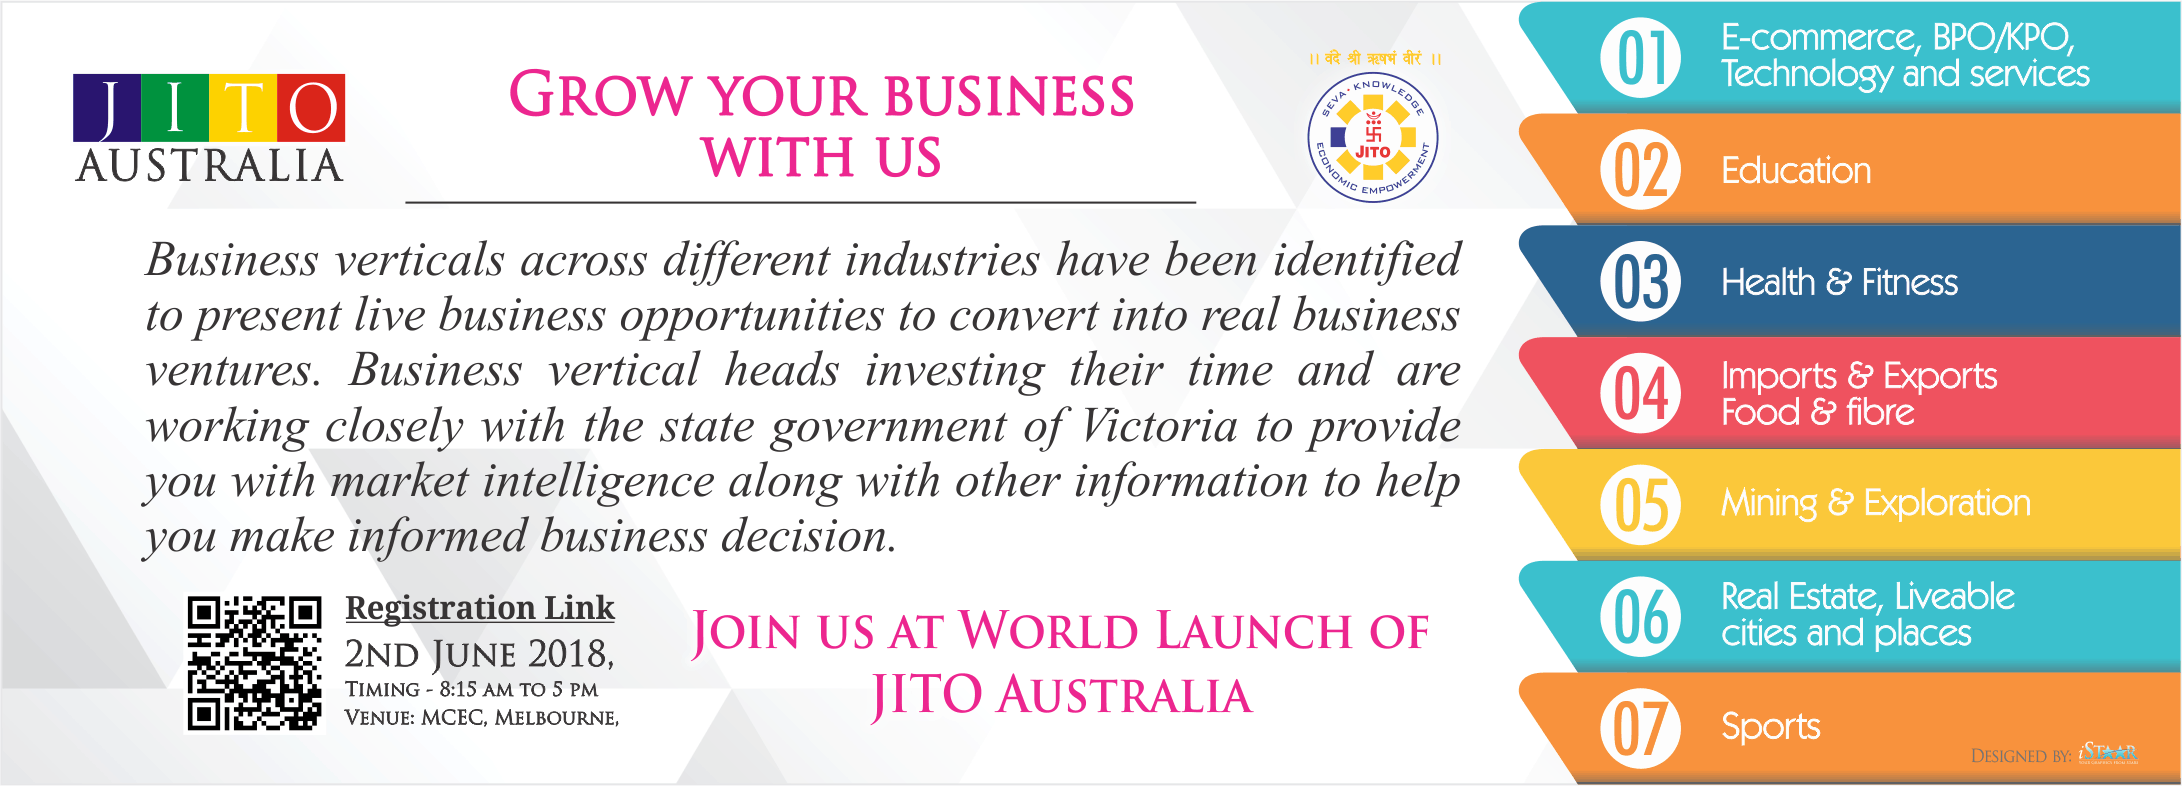 JITO Australia World Launch